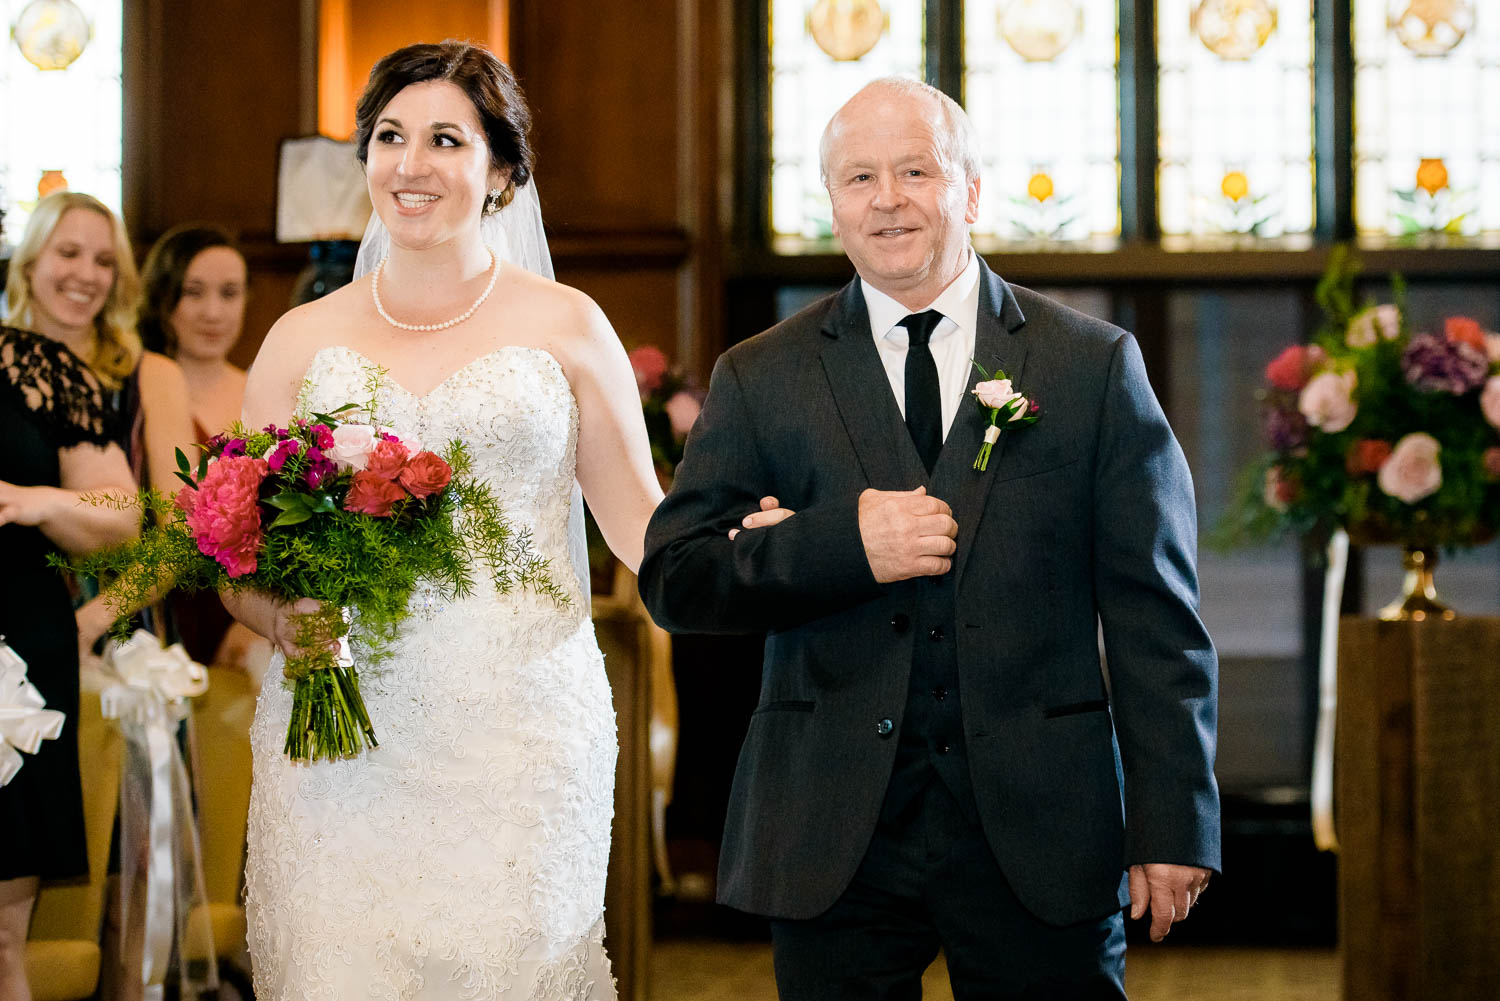 Father and bride walk down the aisle during a University Club of Chicago wedding.